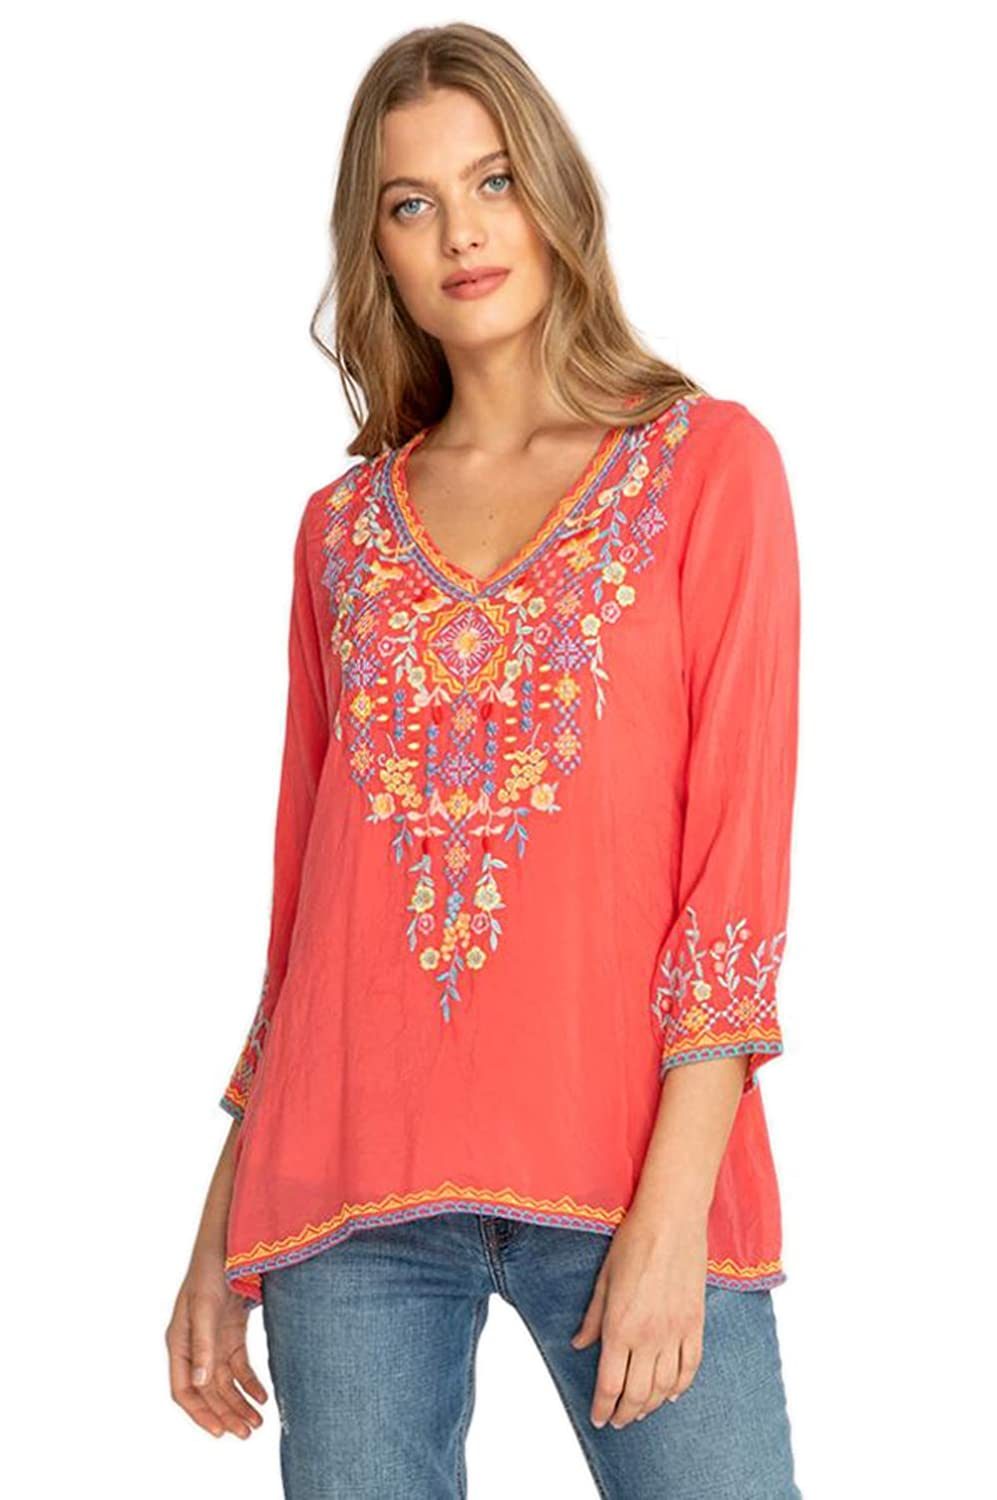 Johnny Was Collection Passion Fruit Ryleigh Blouse (MSRP  225)